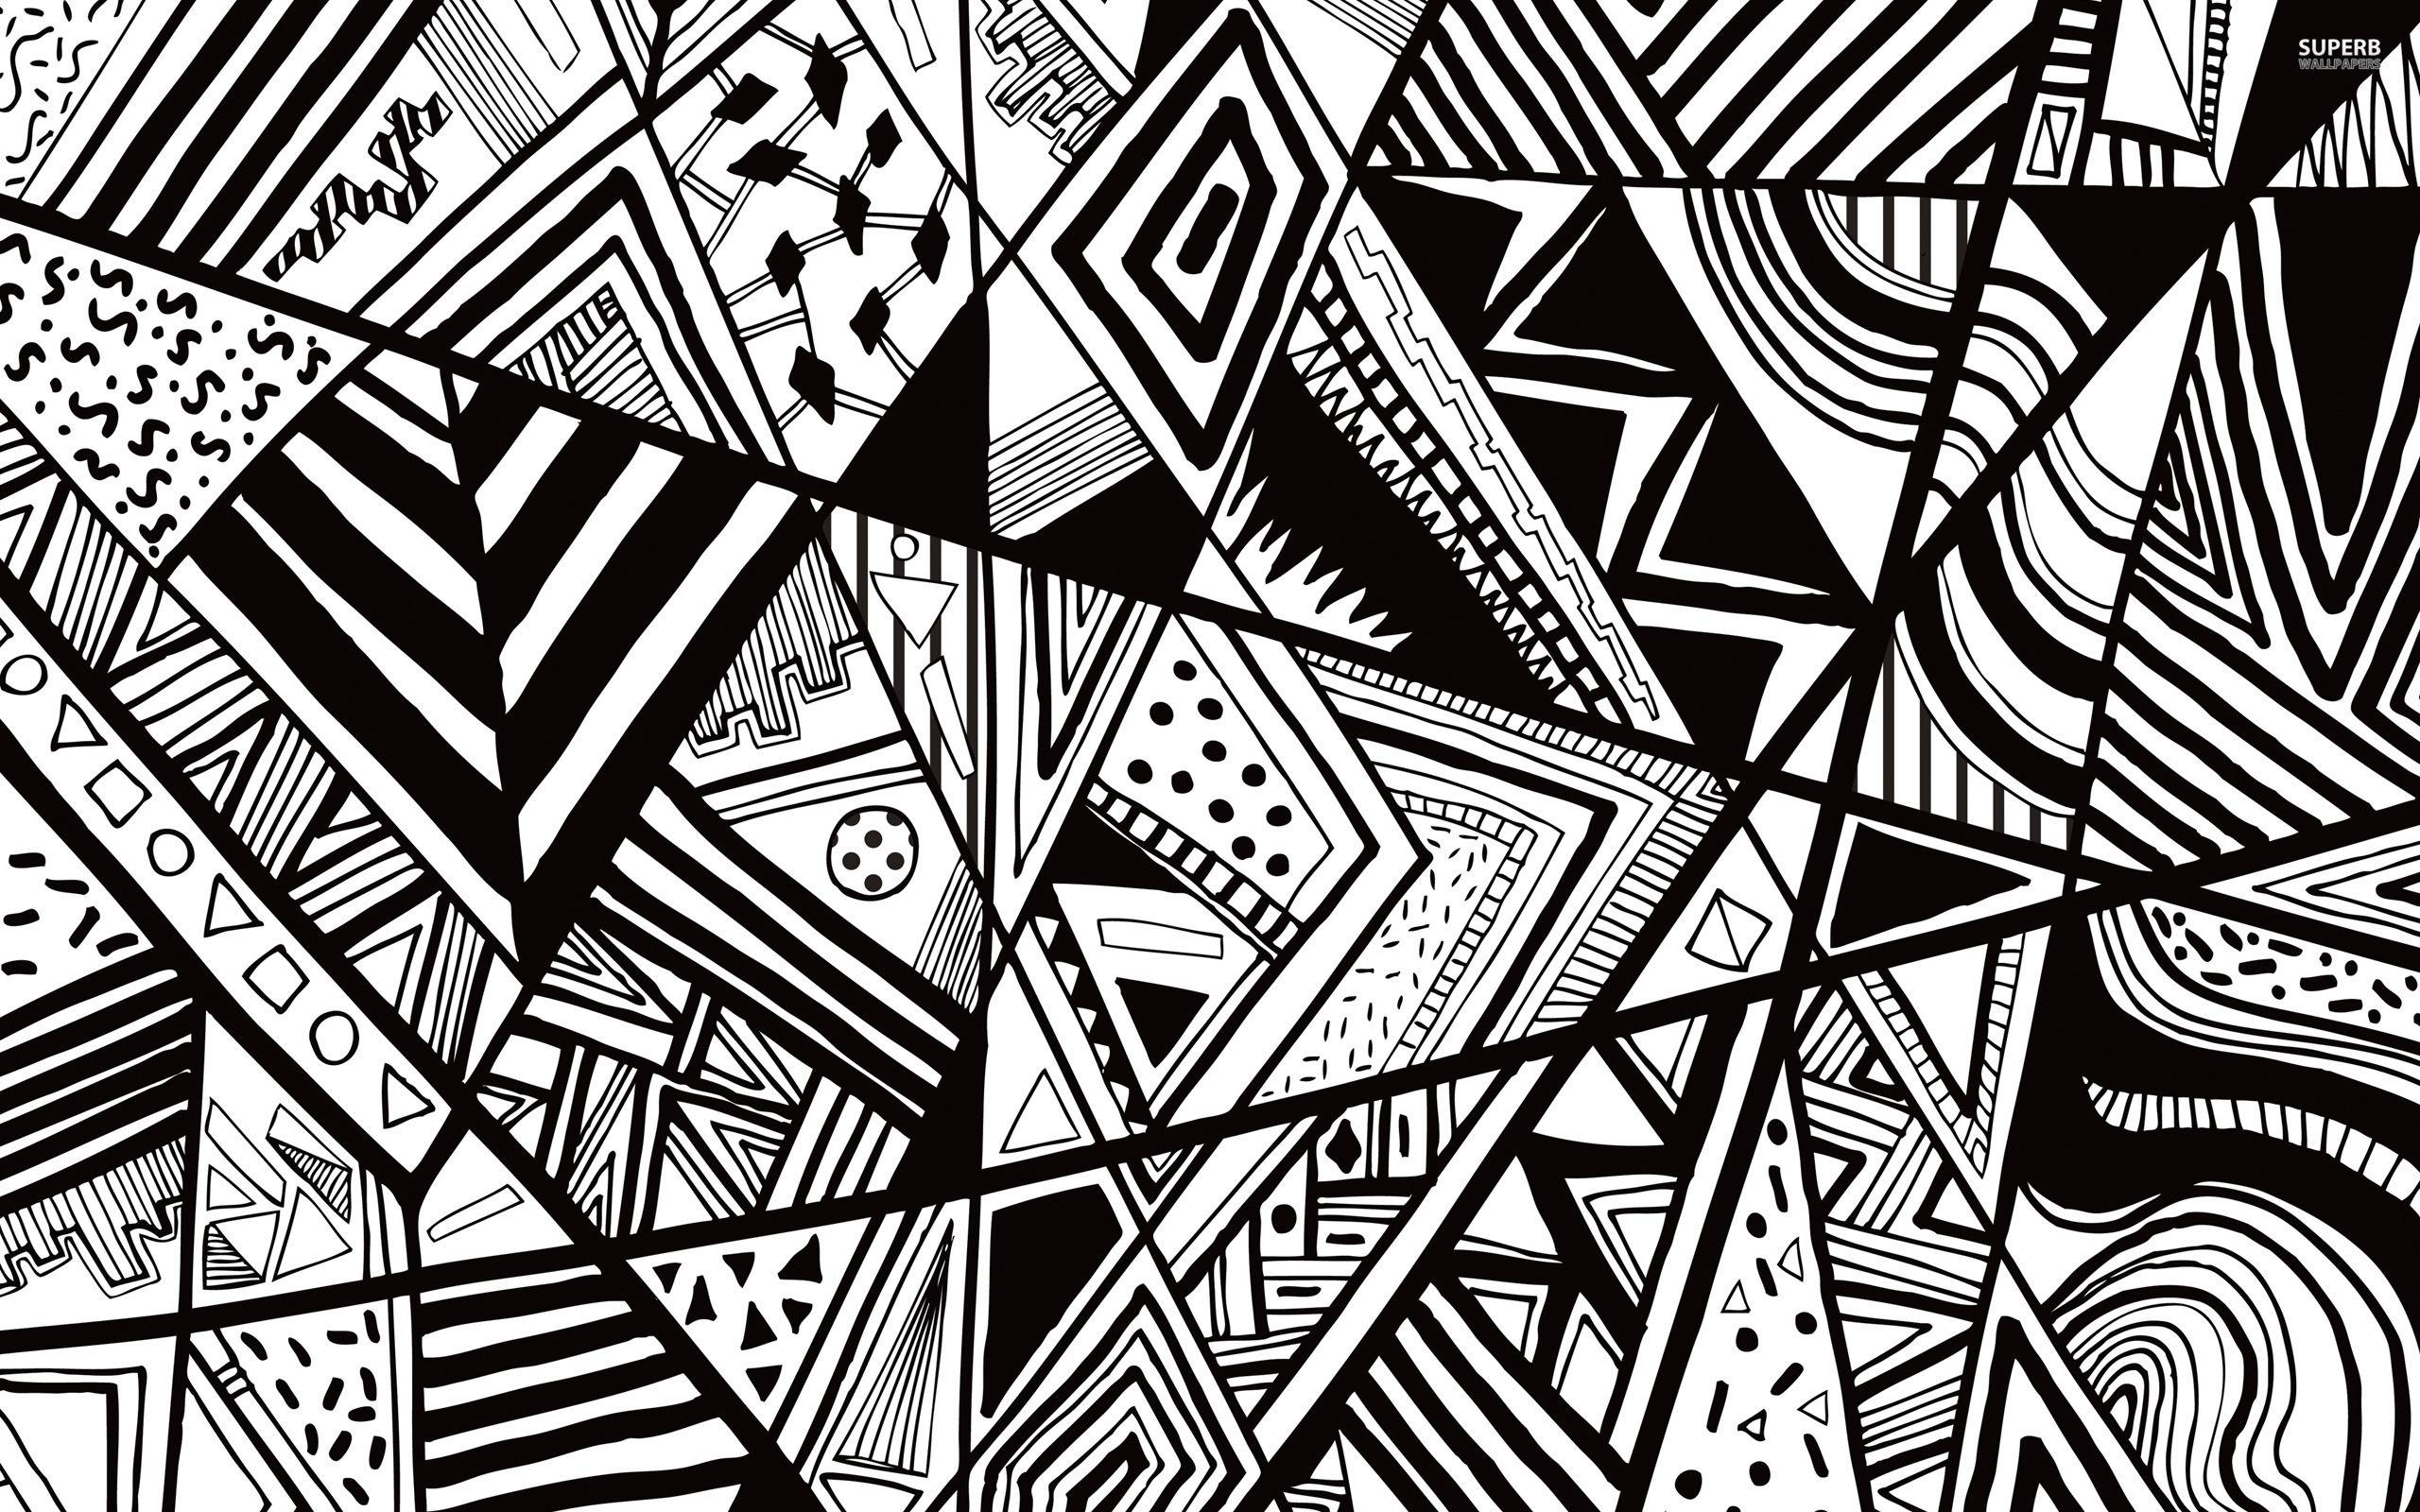 Line Drawing Wallpaper Uk : Doodle wallpapers wallpaper cave